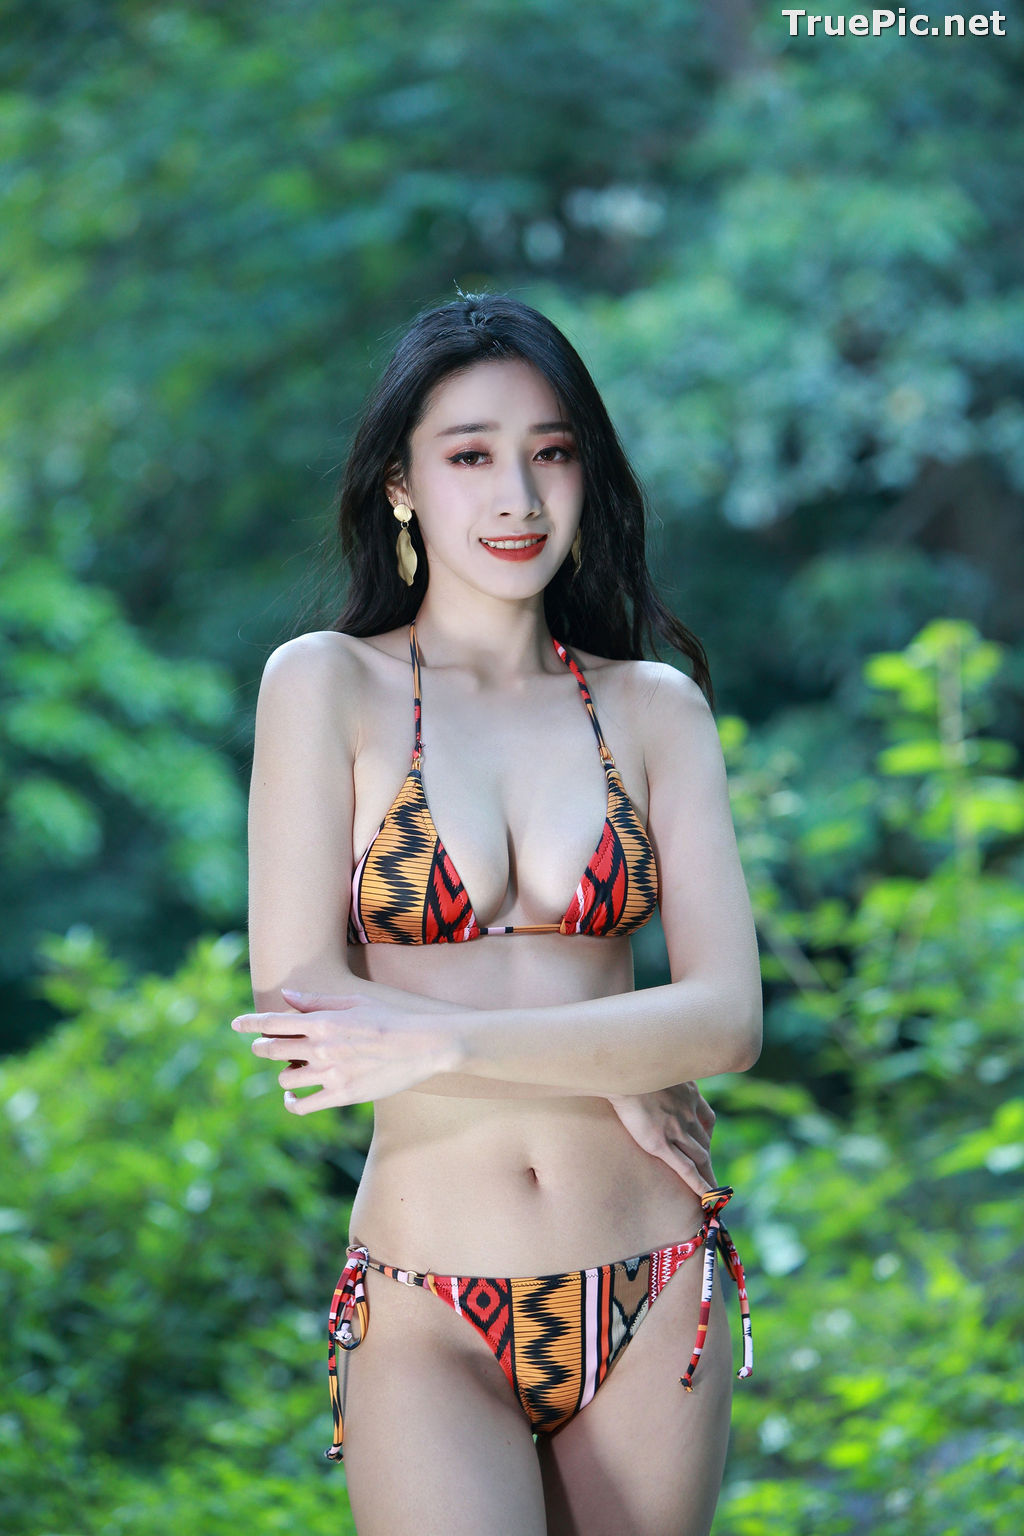 Image Taiwanese Model - 段璟樂 - Lovely and Sexy Bikini Baby - TruePic.net - Picture-6